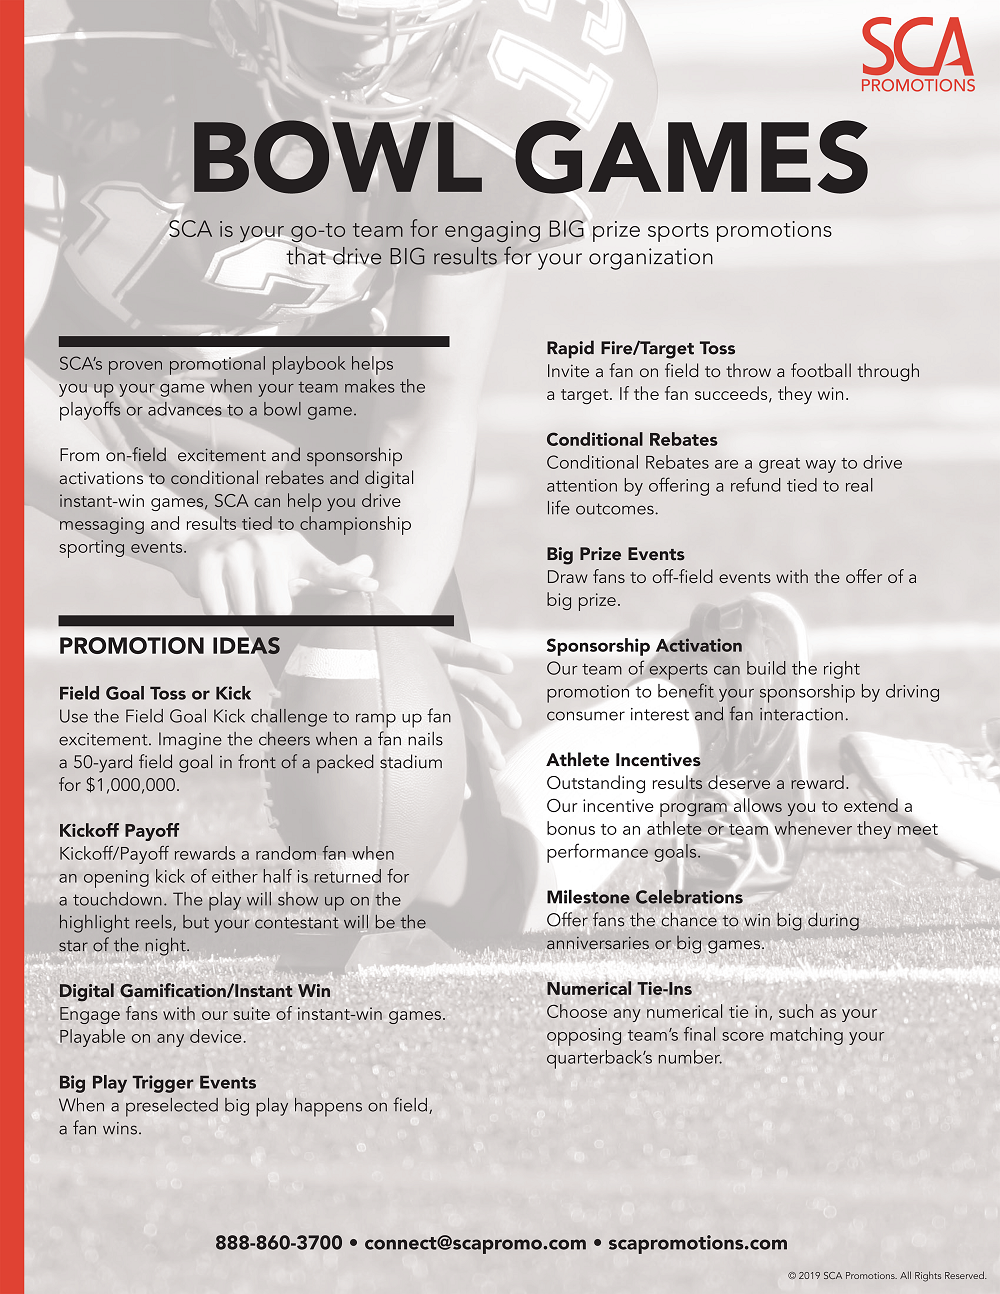 Football Bowl Games and Playoff Promotions by SCA